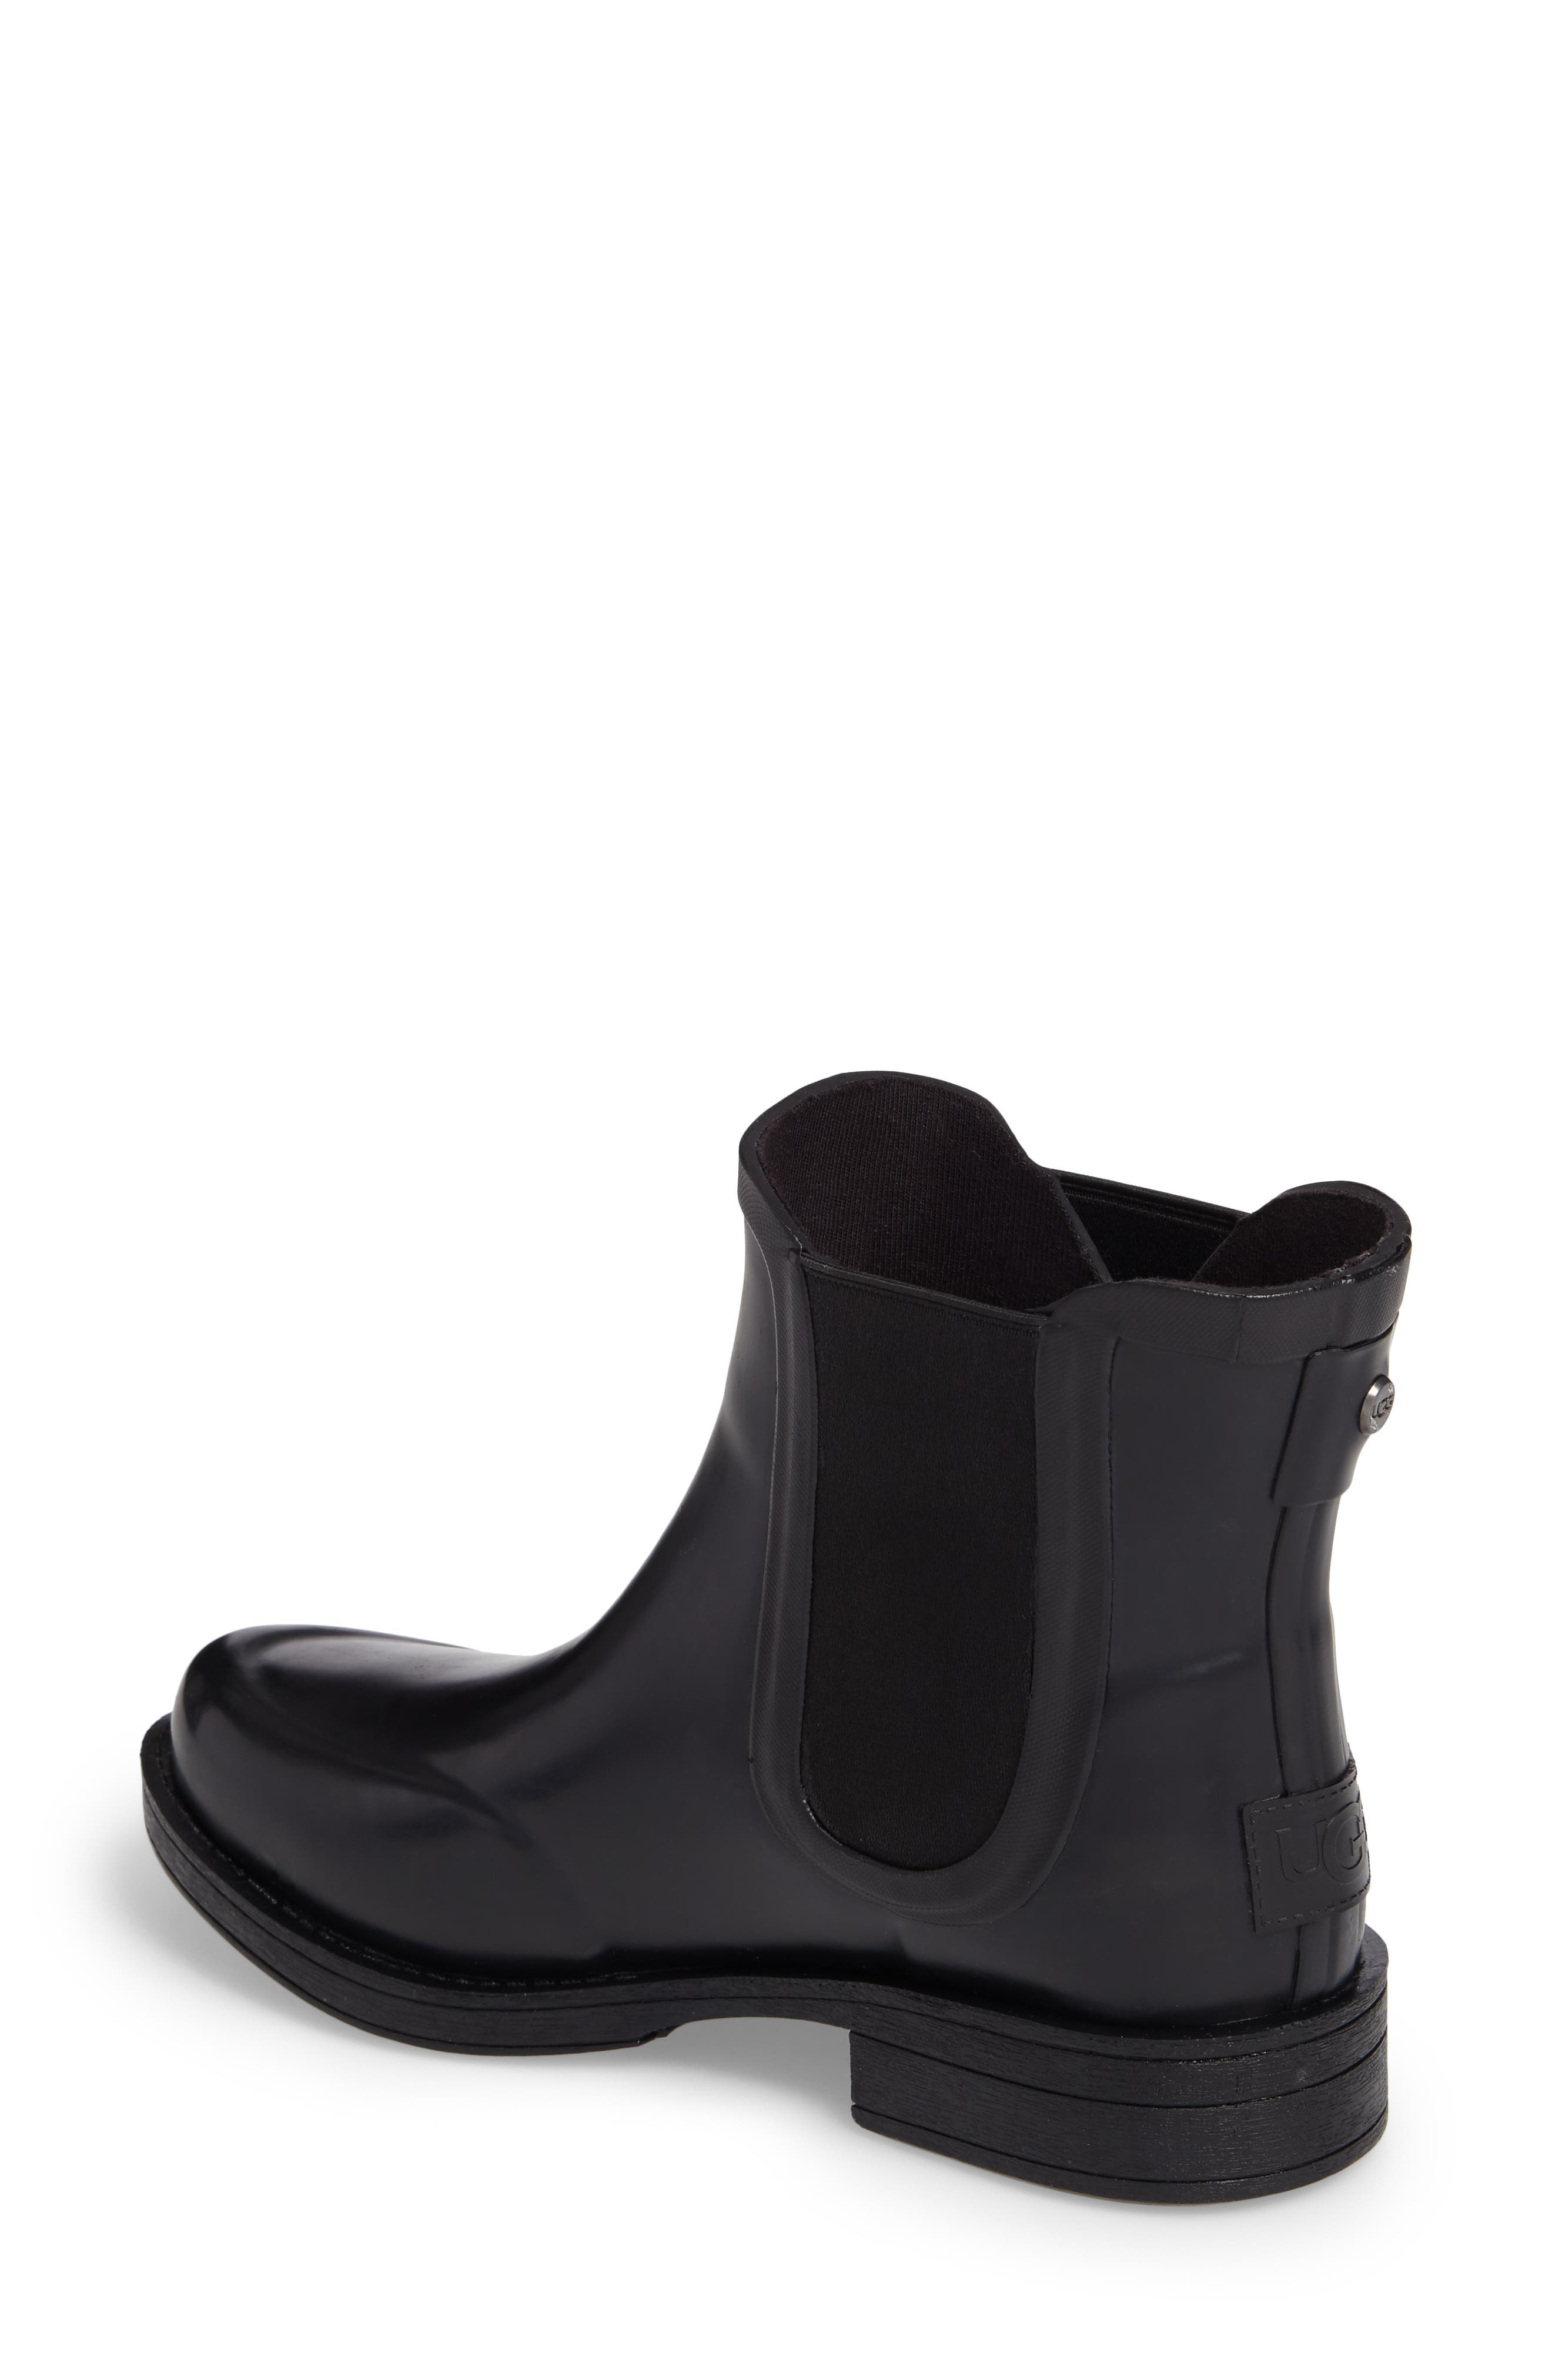 Aviana Chelsea Rain Boot,                             Alternate thumbnail 2, color,                             001